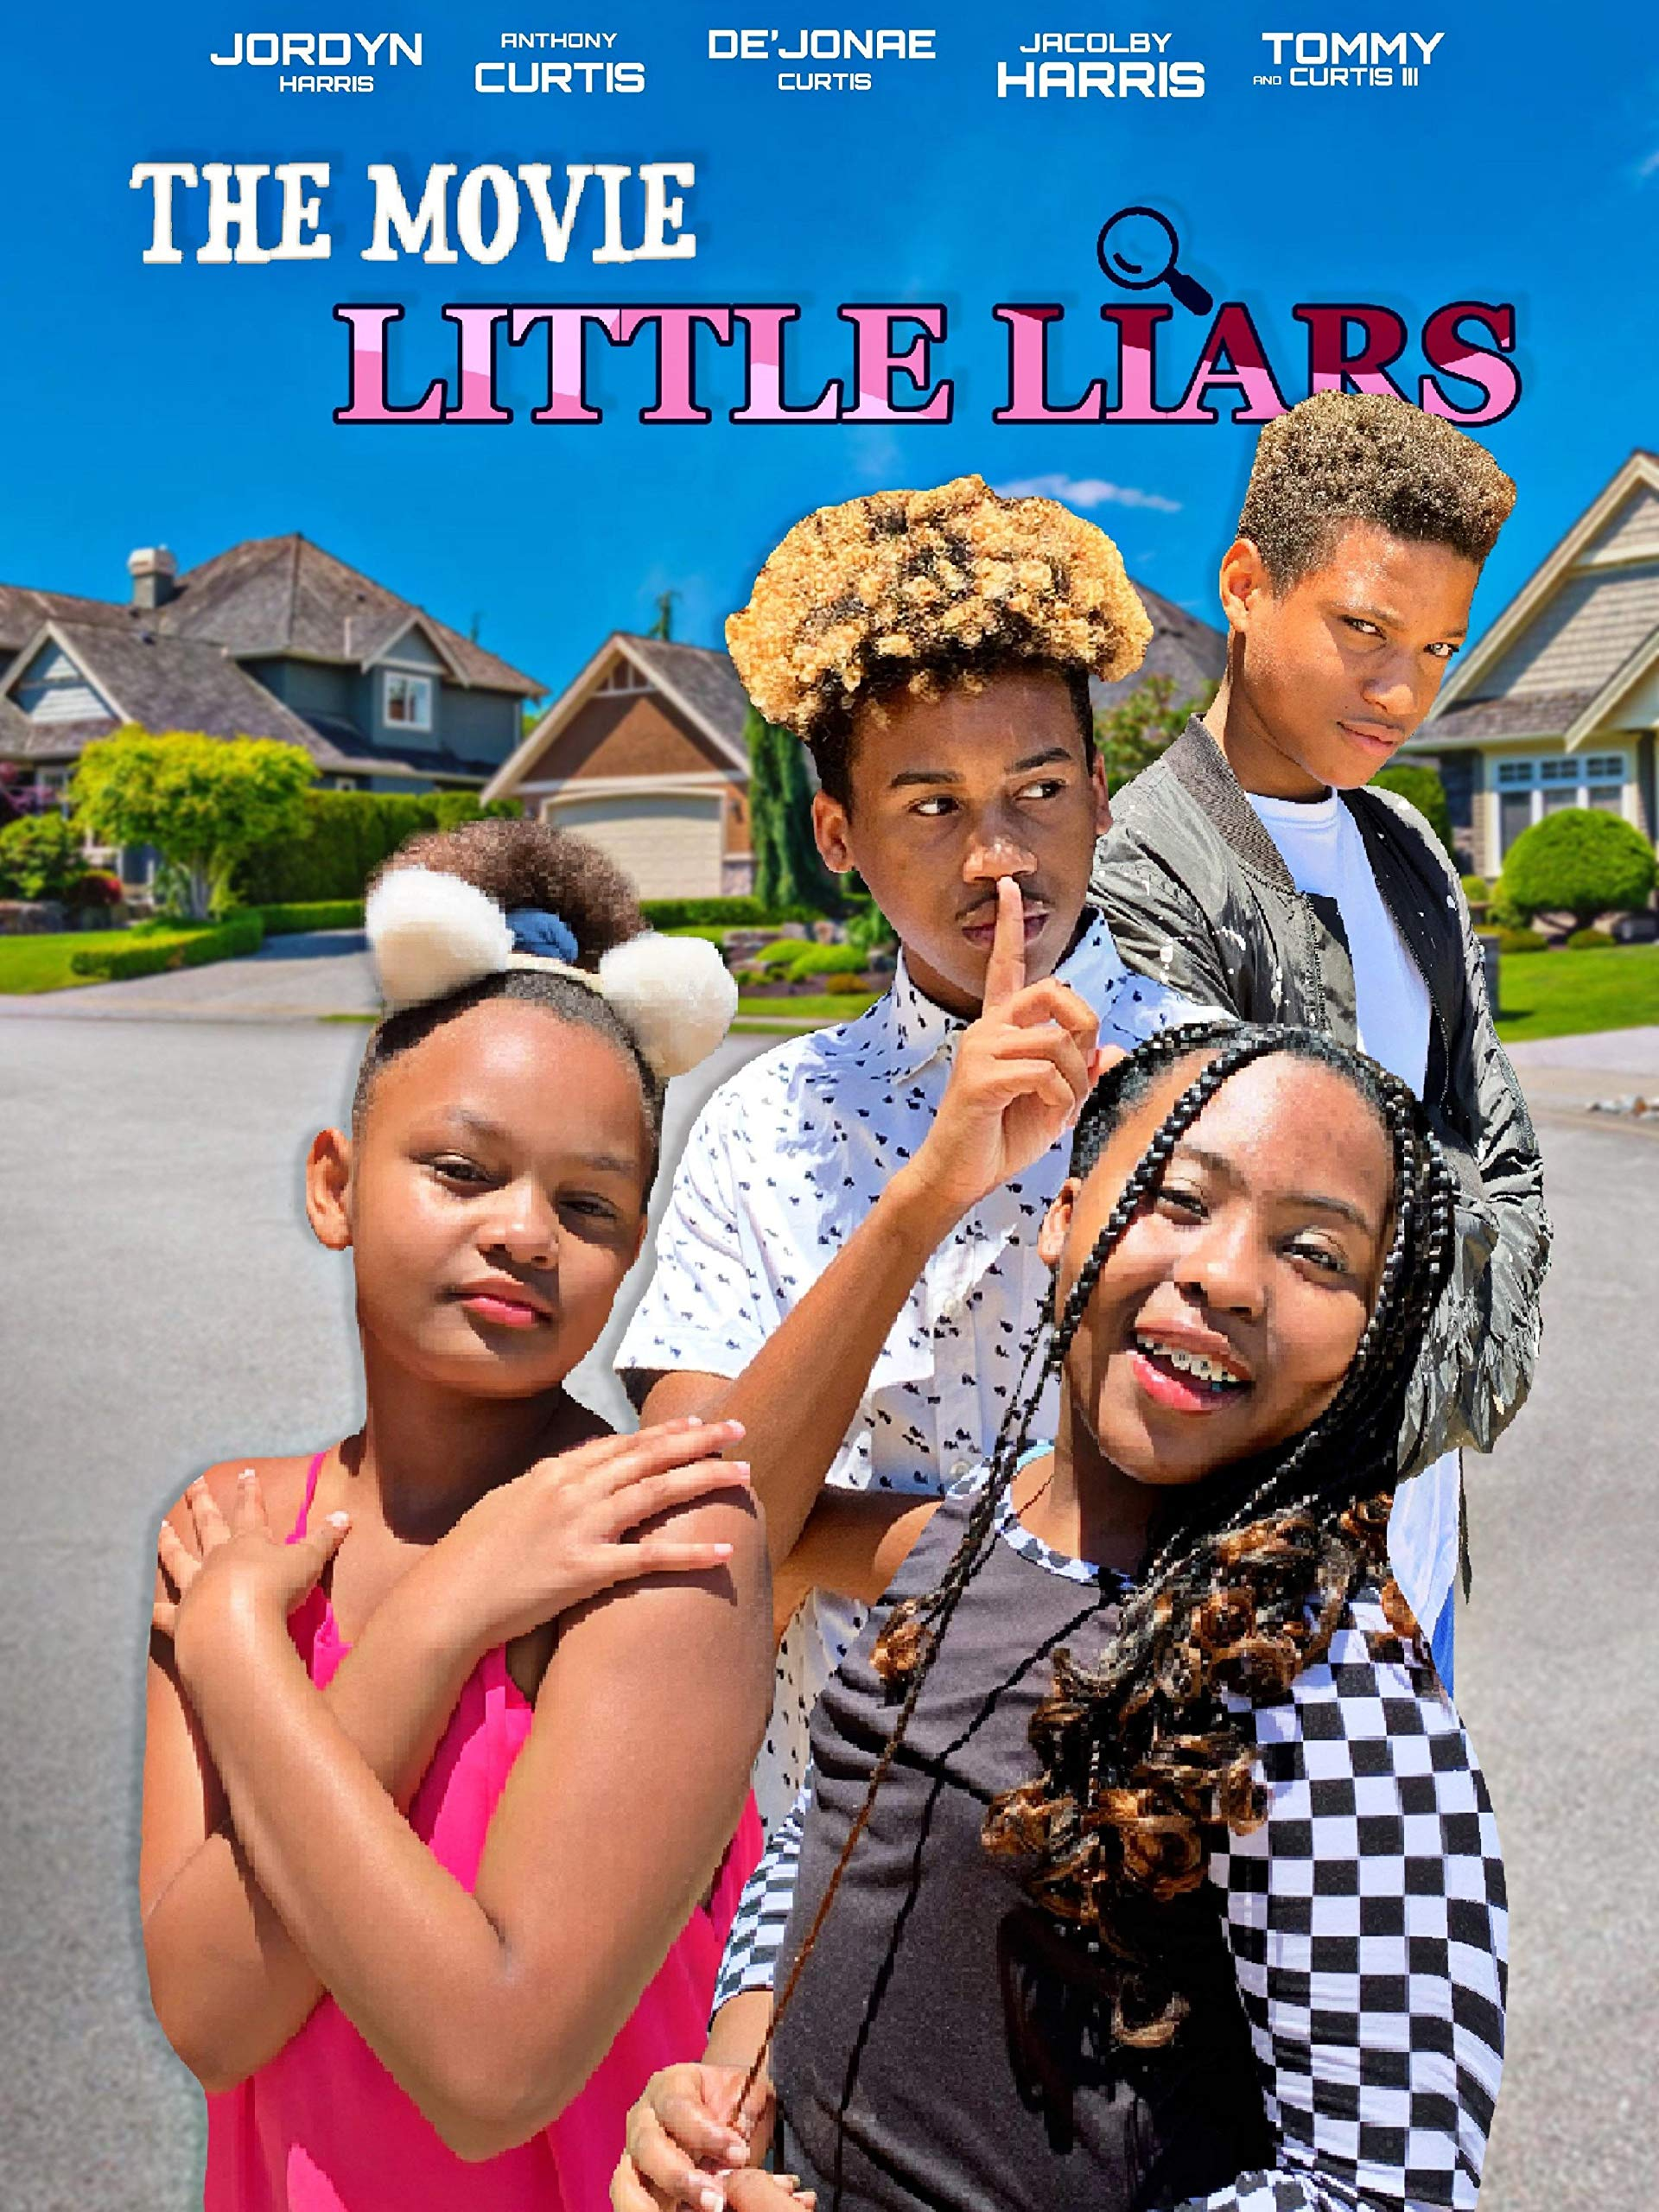 Little Liars the Movie